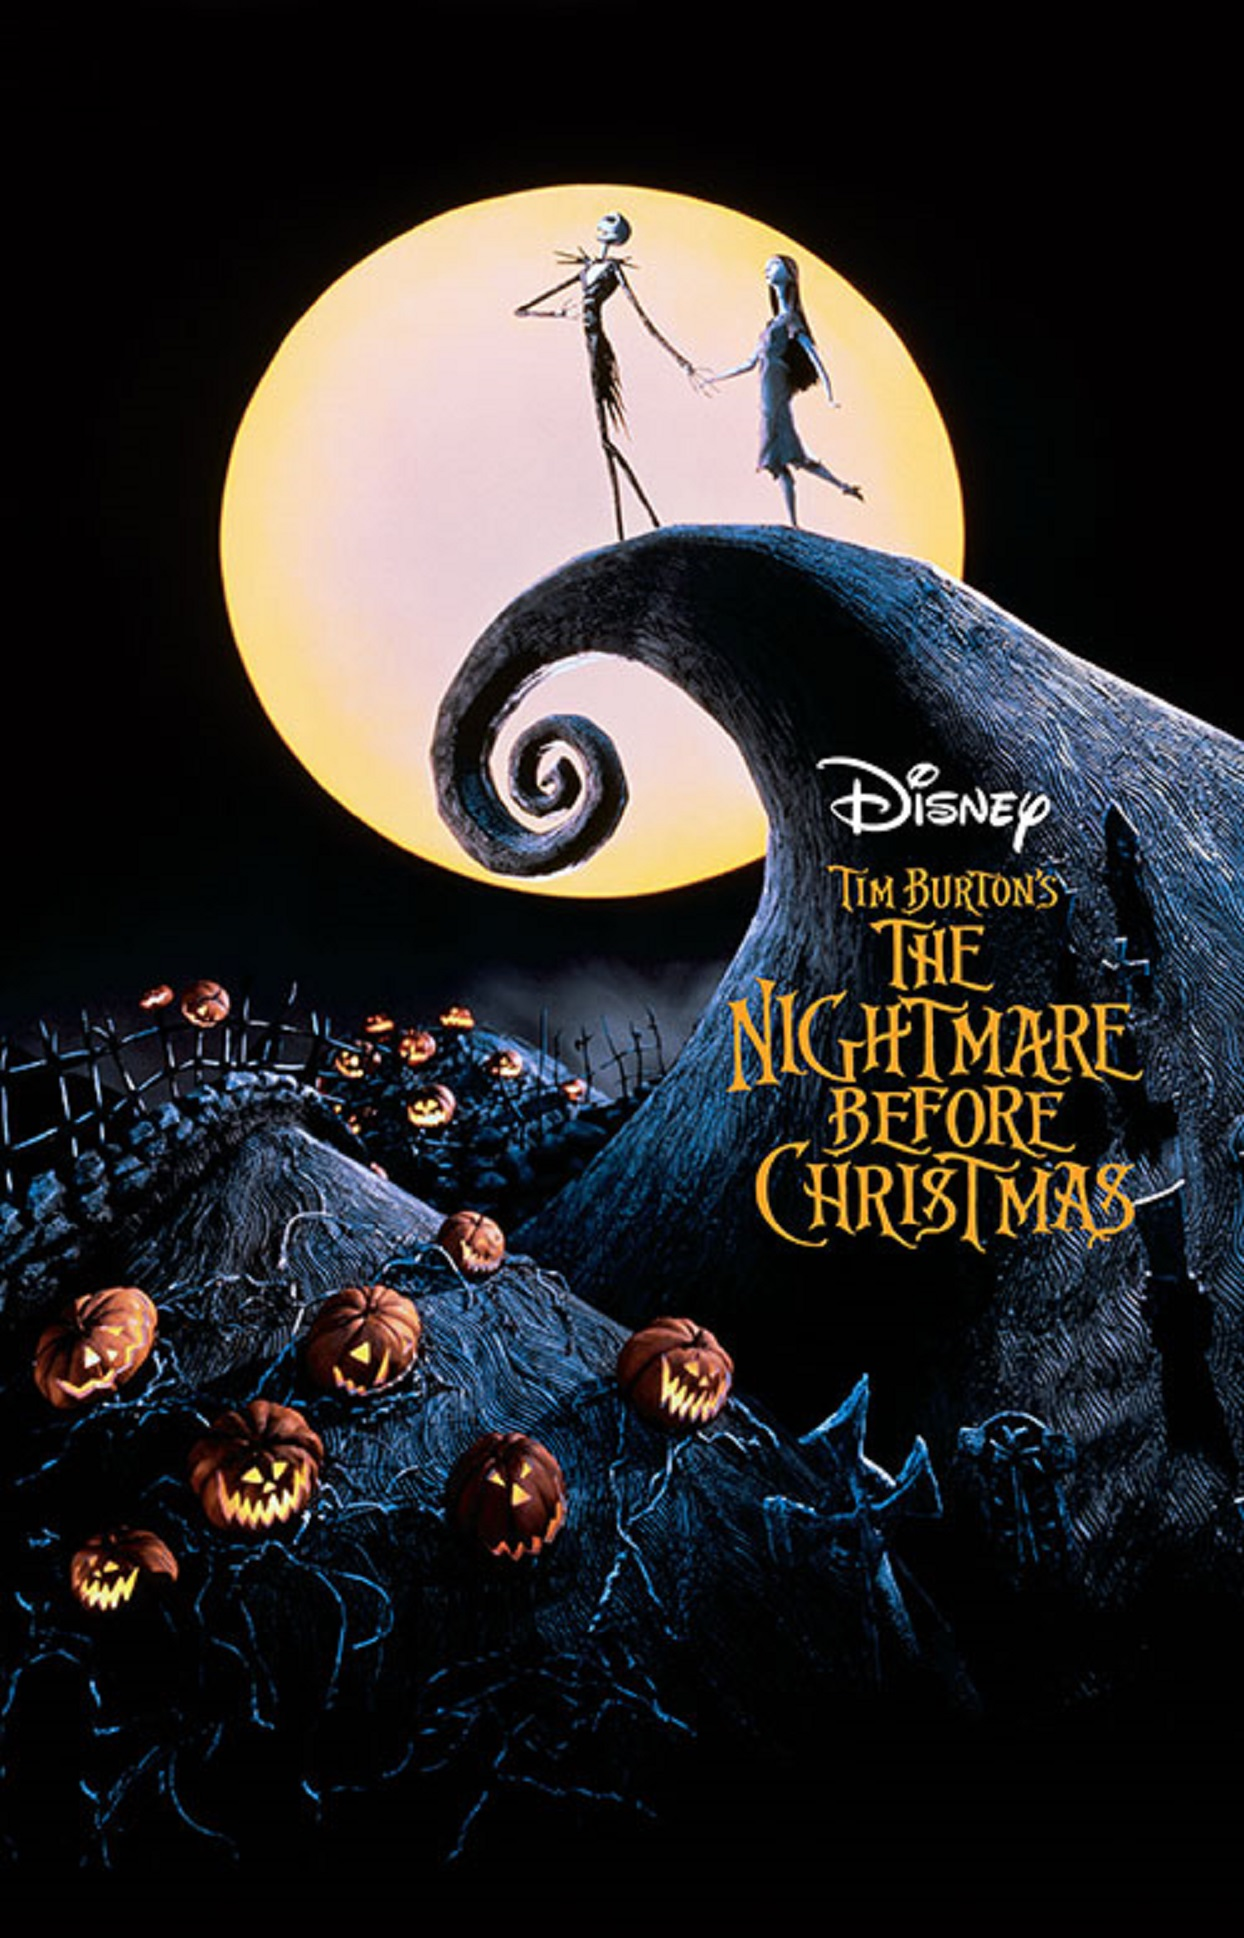 1993 The Nightmare Before Christmas Movie Poster